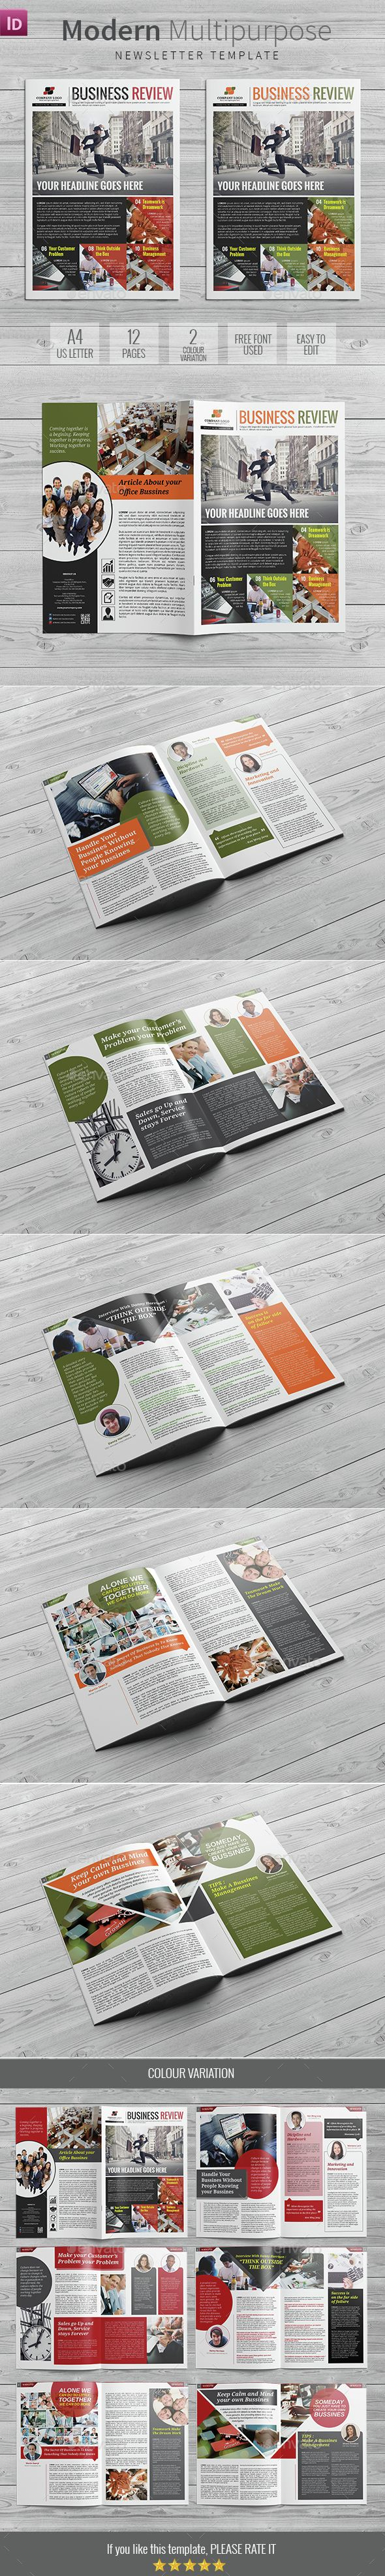 Modern Multipurpose Newsletter Template InDesign INDD. Download here…